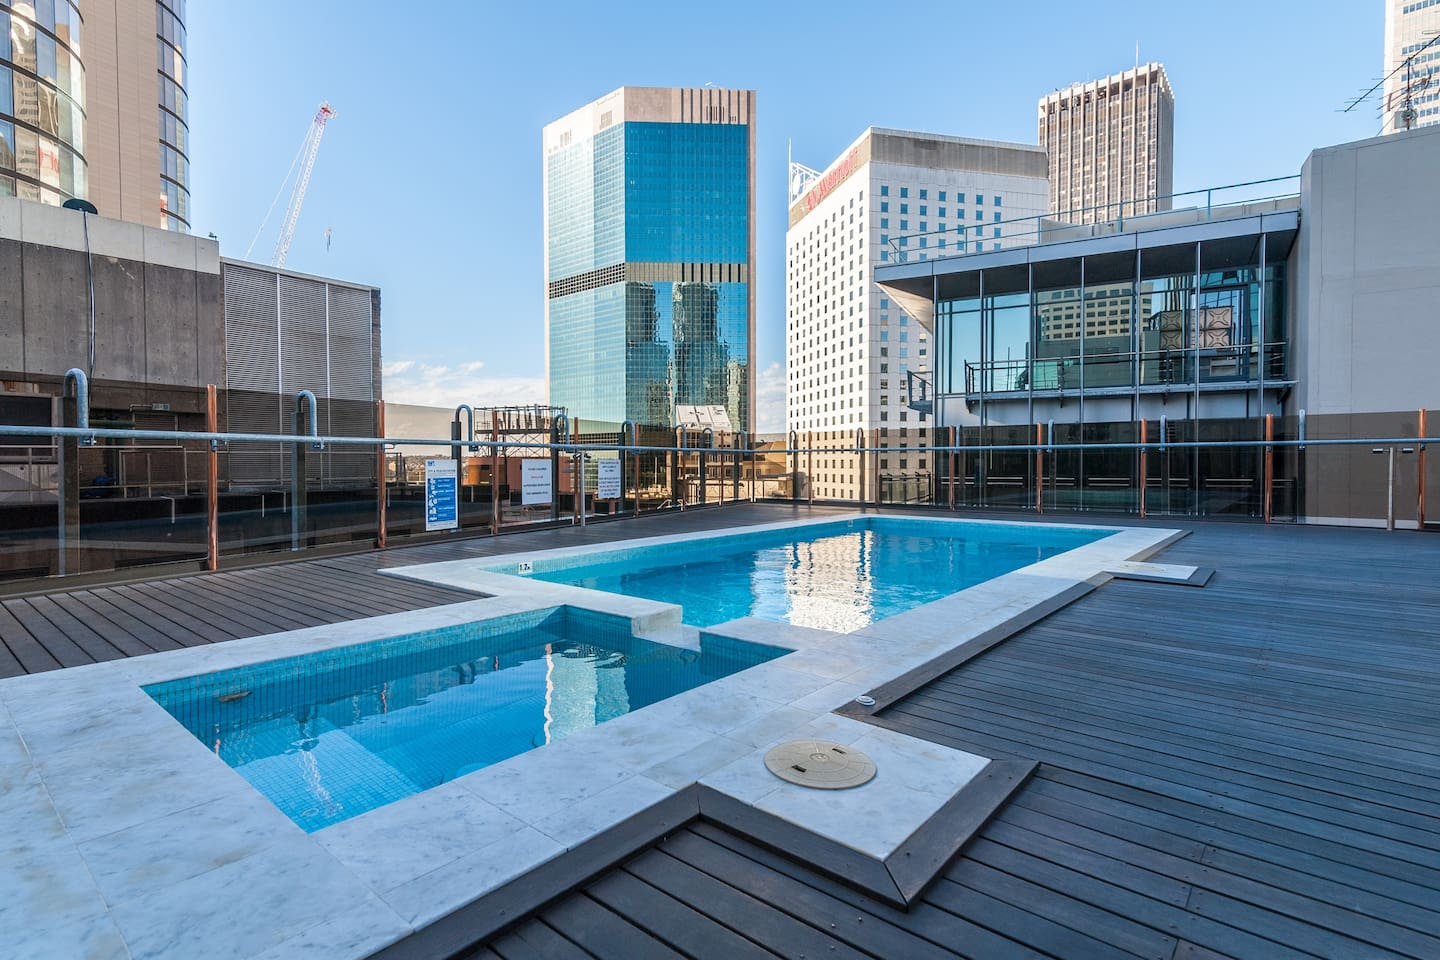 Your rooftop pool awaits!